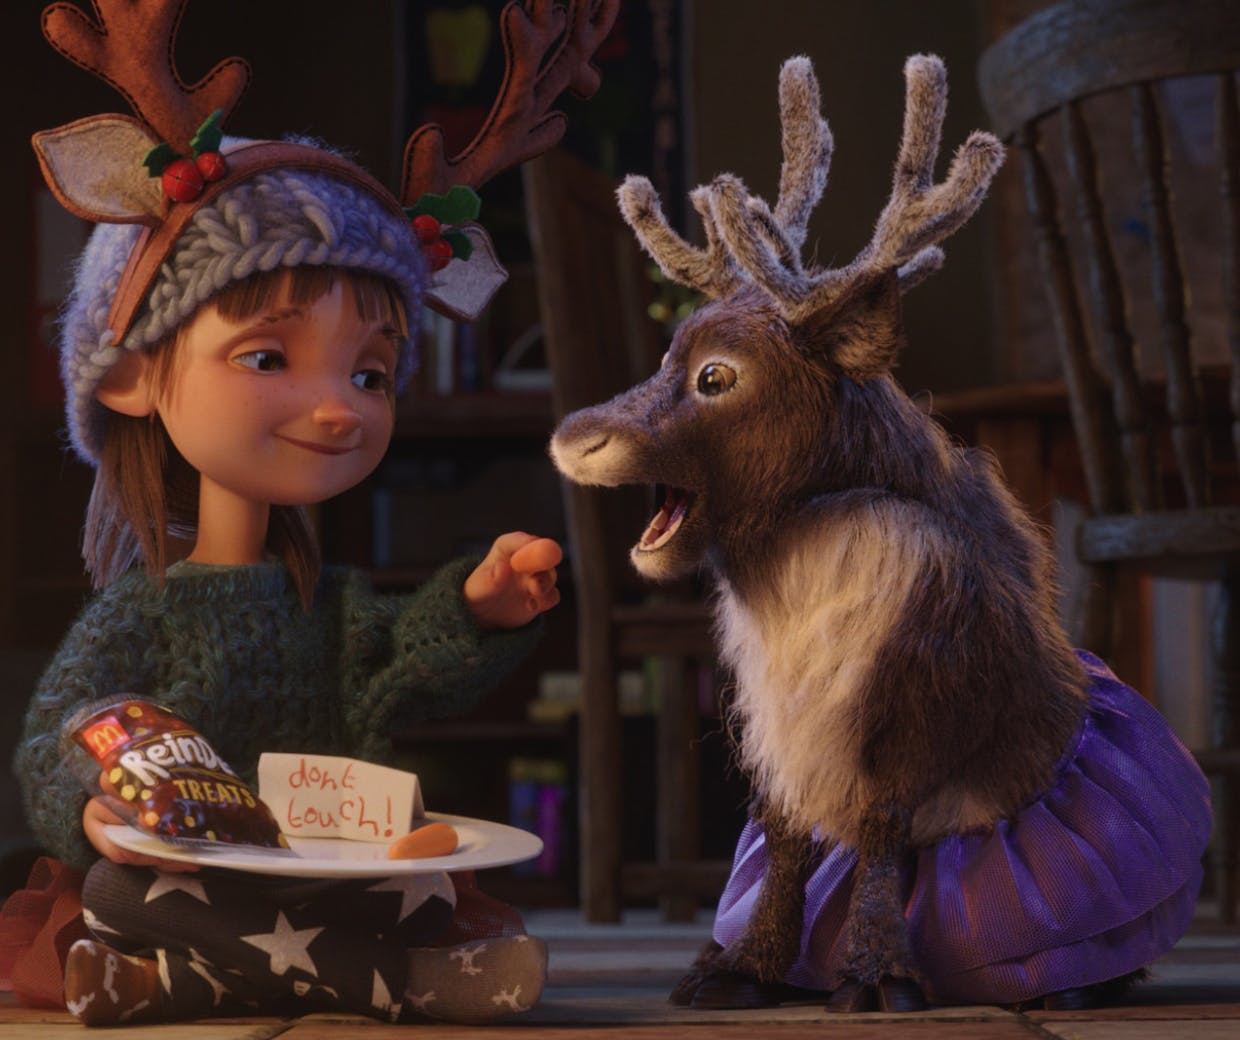 imagination in Christmas ad